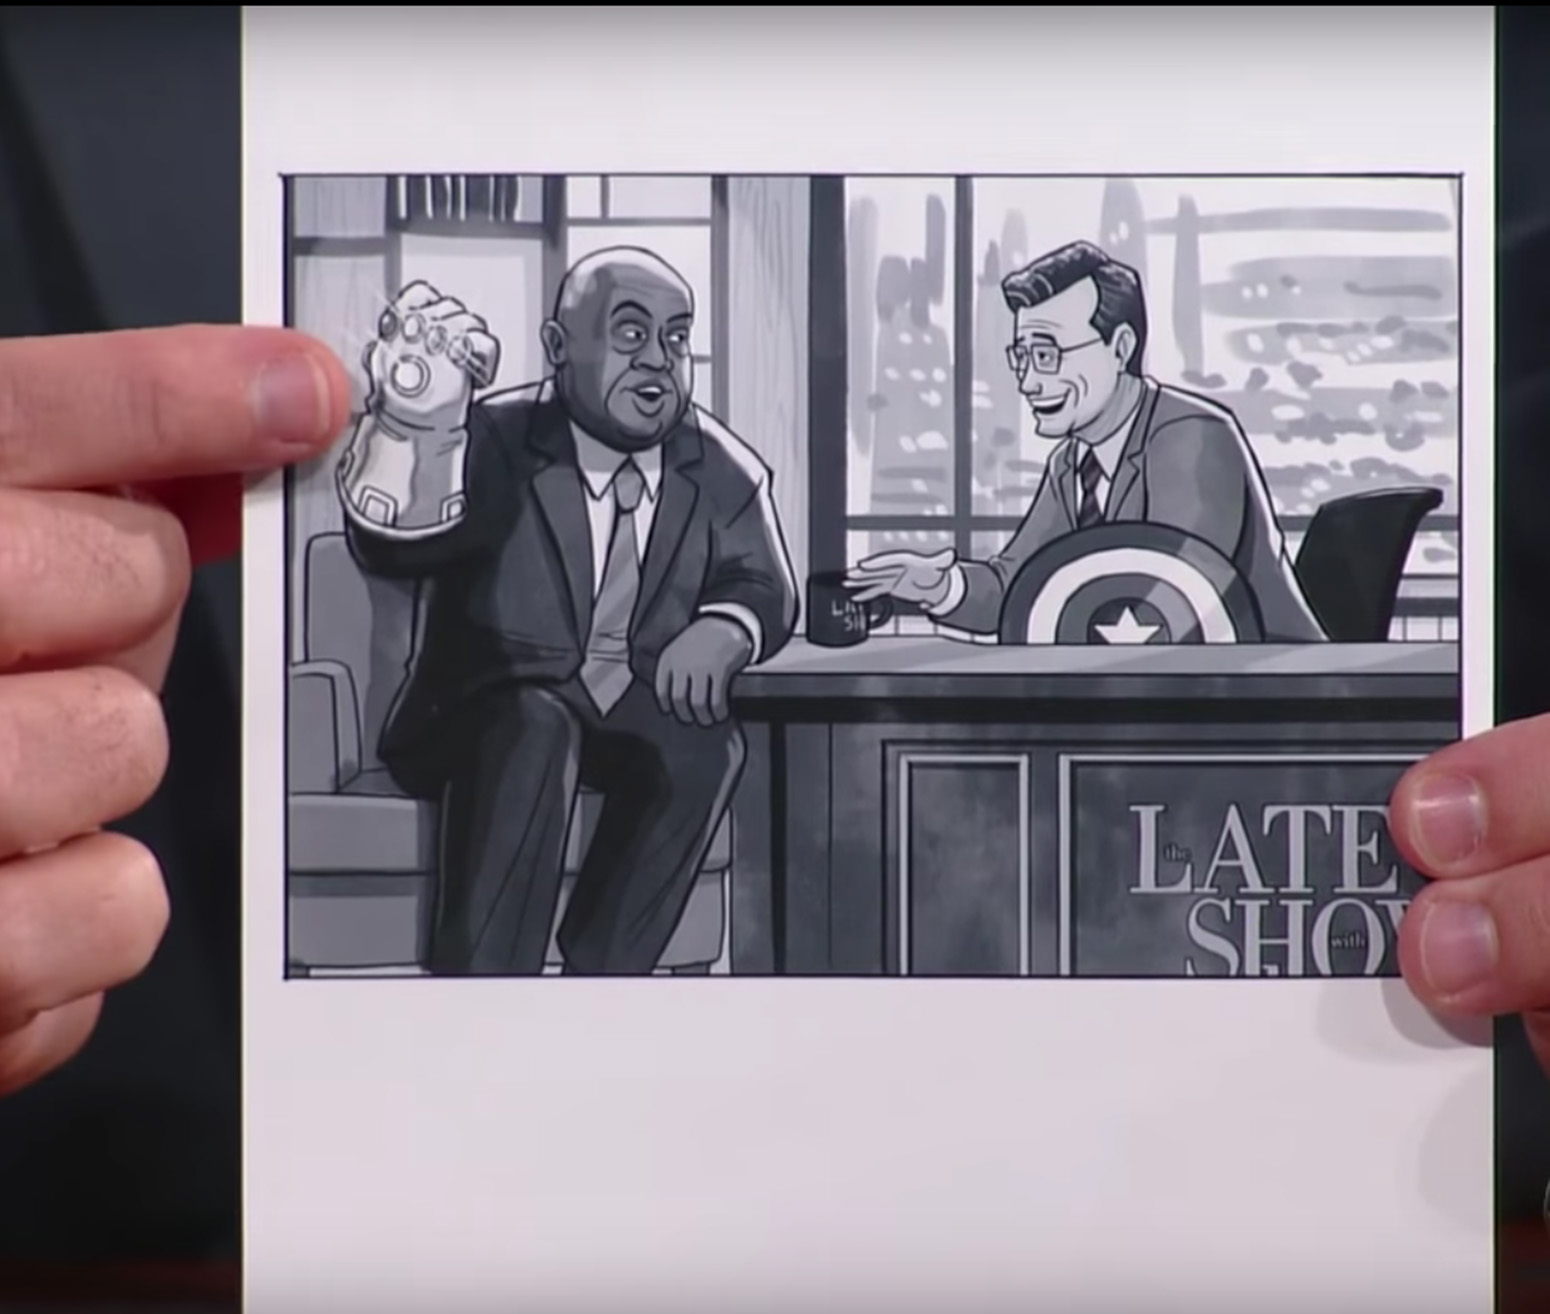 Colbert and Lewis